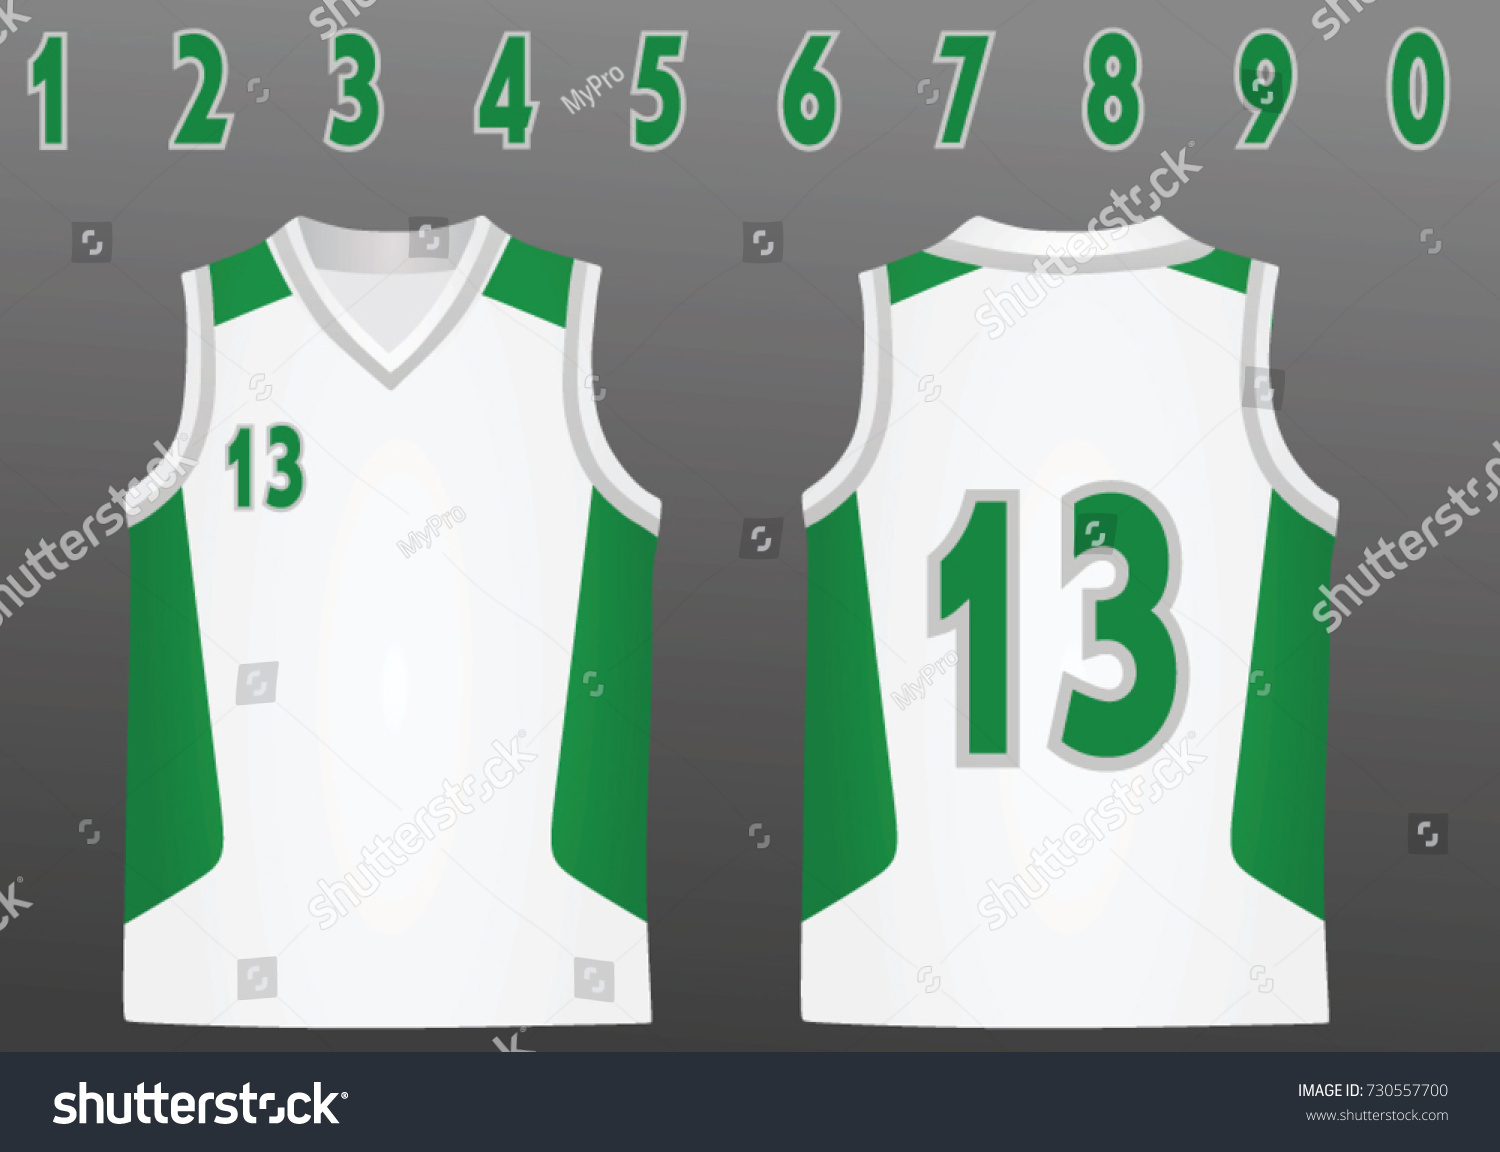 5ad3655738c3 Basketball Jersey Vector Illustration Stock Vector (Royalty Free ...